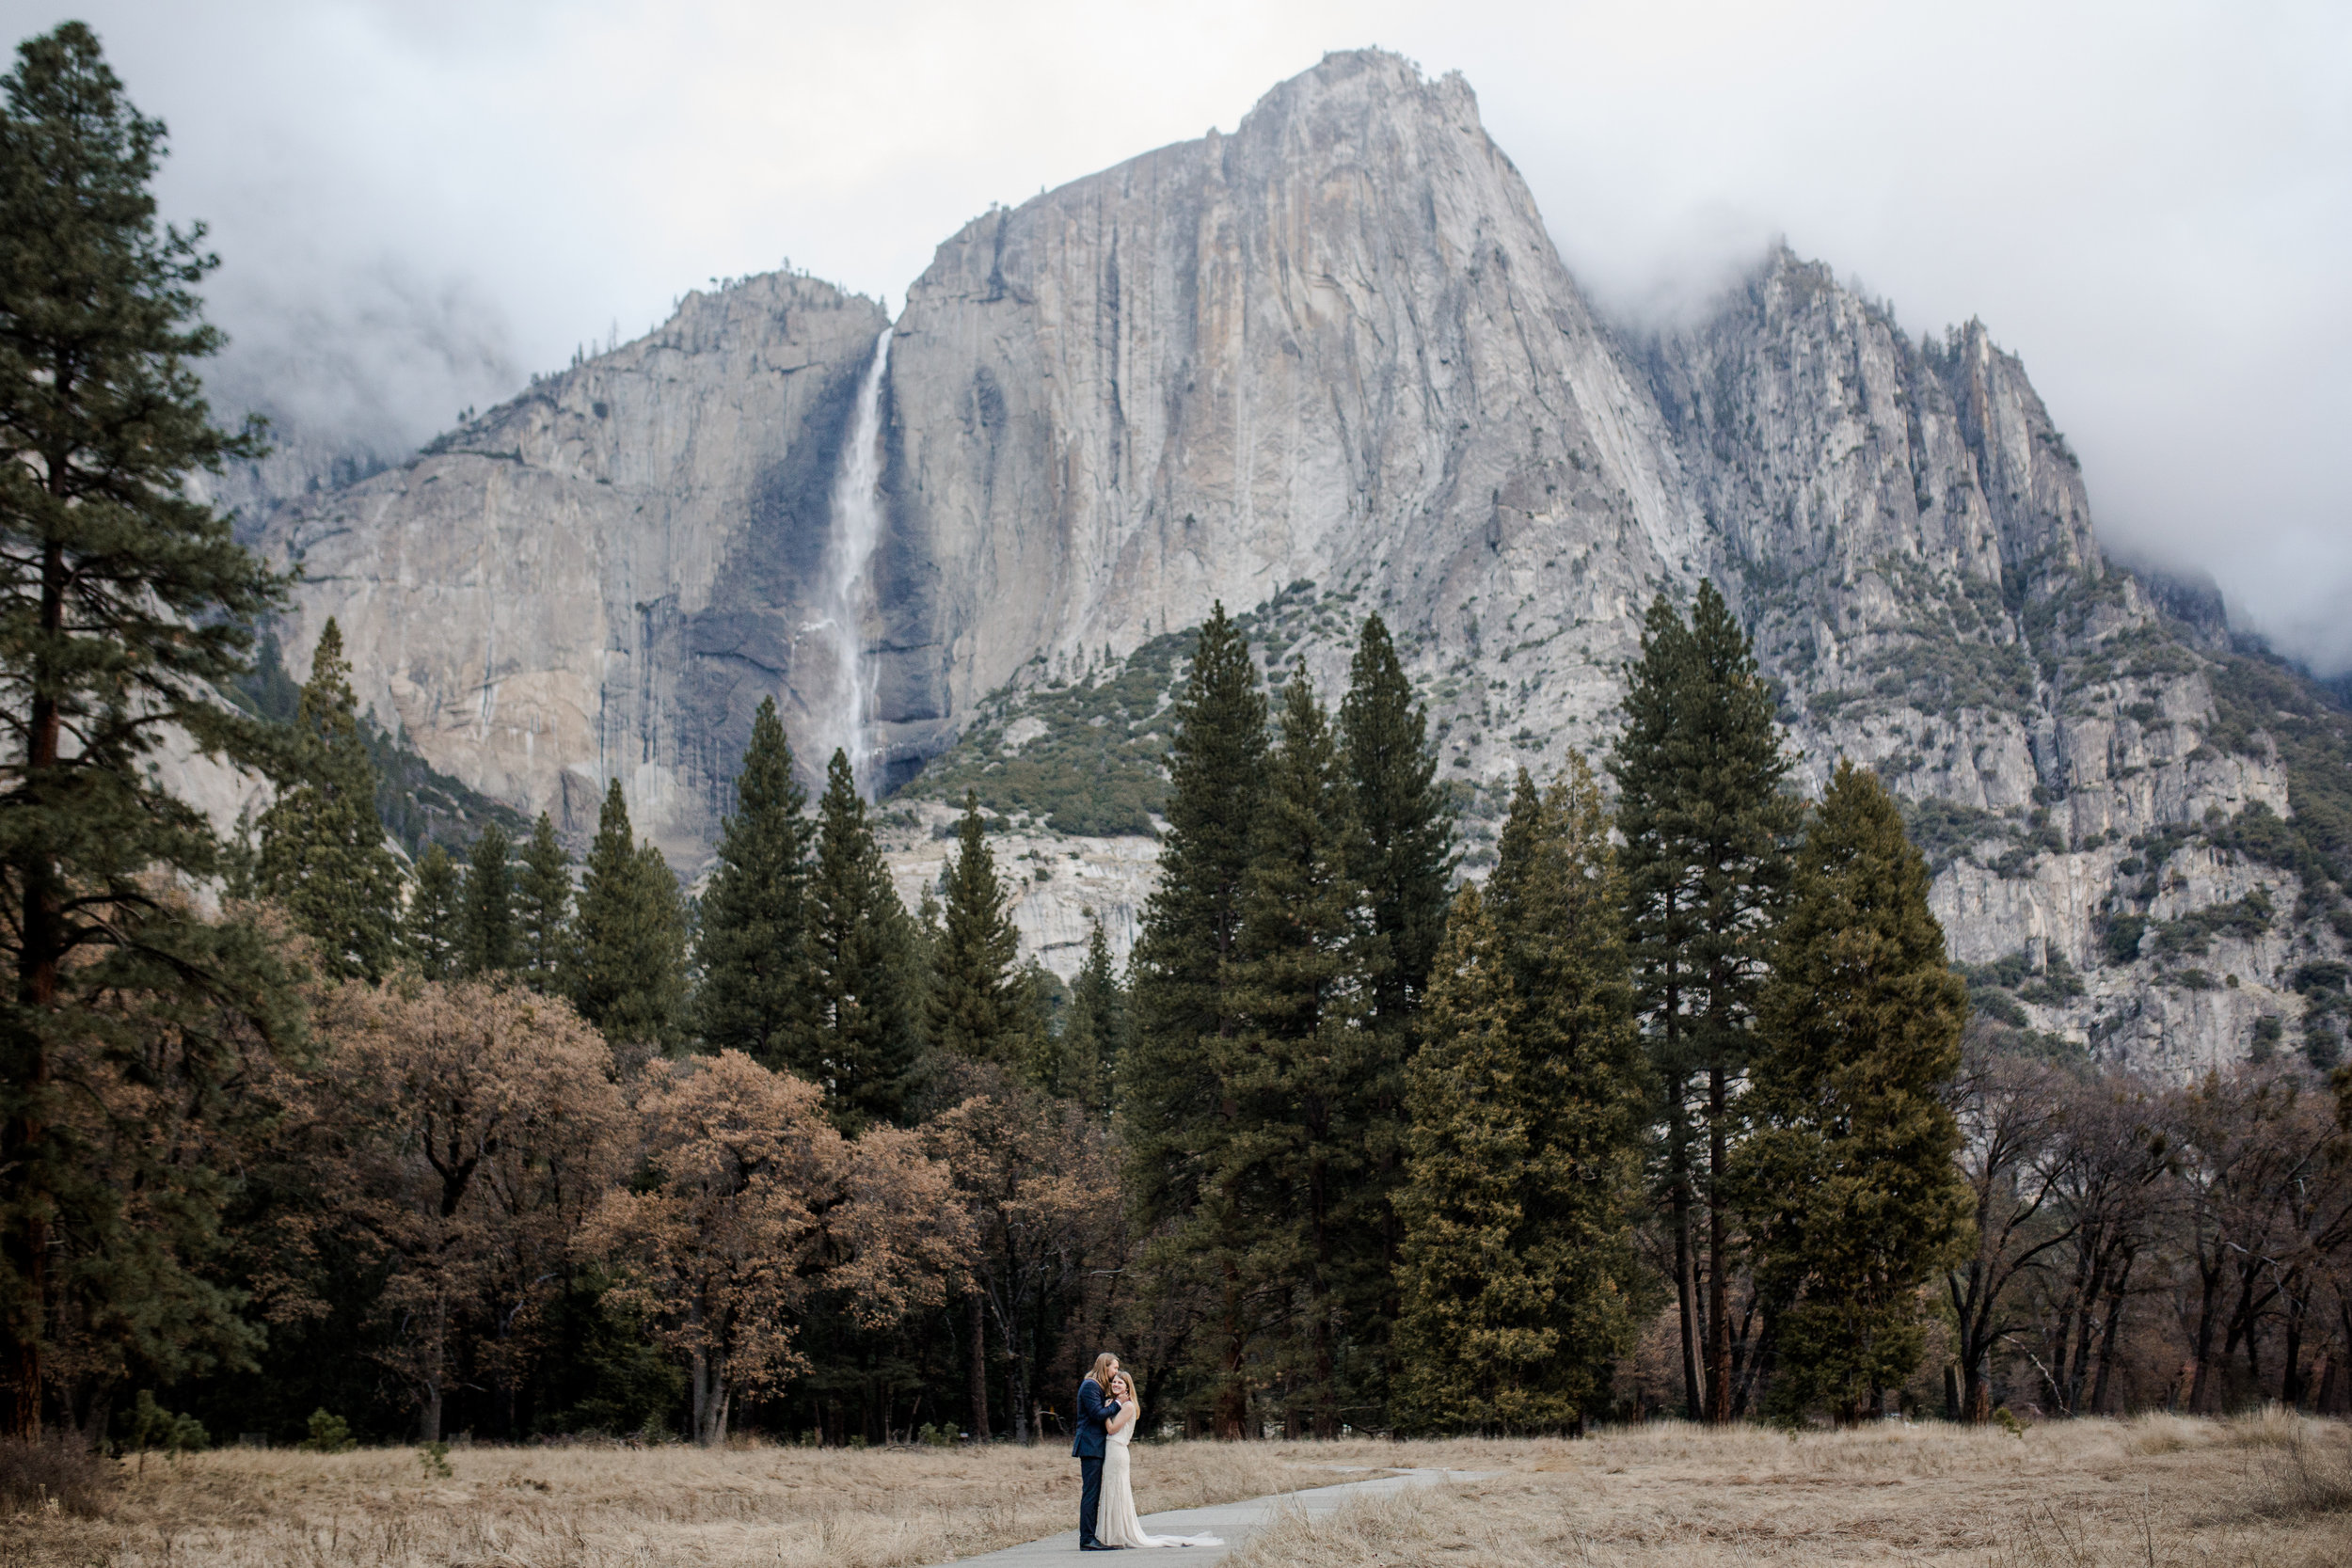 nicole-daacke-photography-yousemite-national-park-elopement-photographer-winter-cloud-moody-elope-inspiration-yosemite-valley-tunnel-view-winter-cloud-fog-weather-wedding-photos-23.jpg